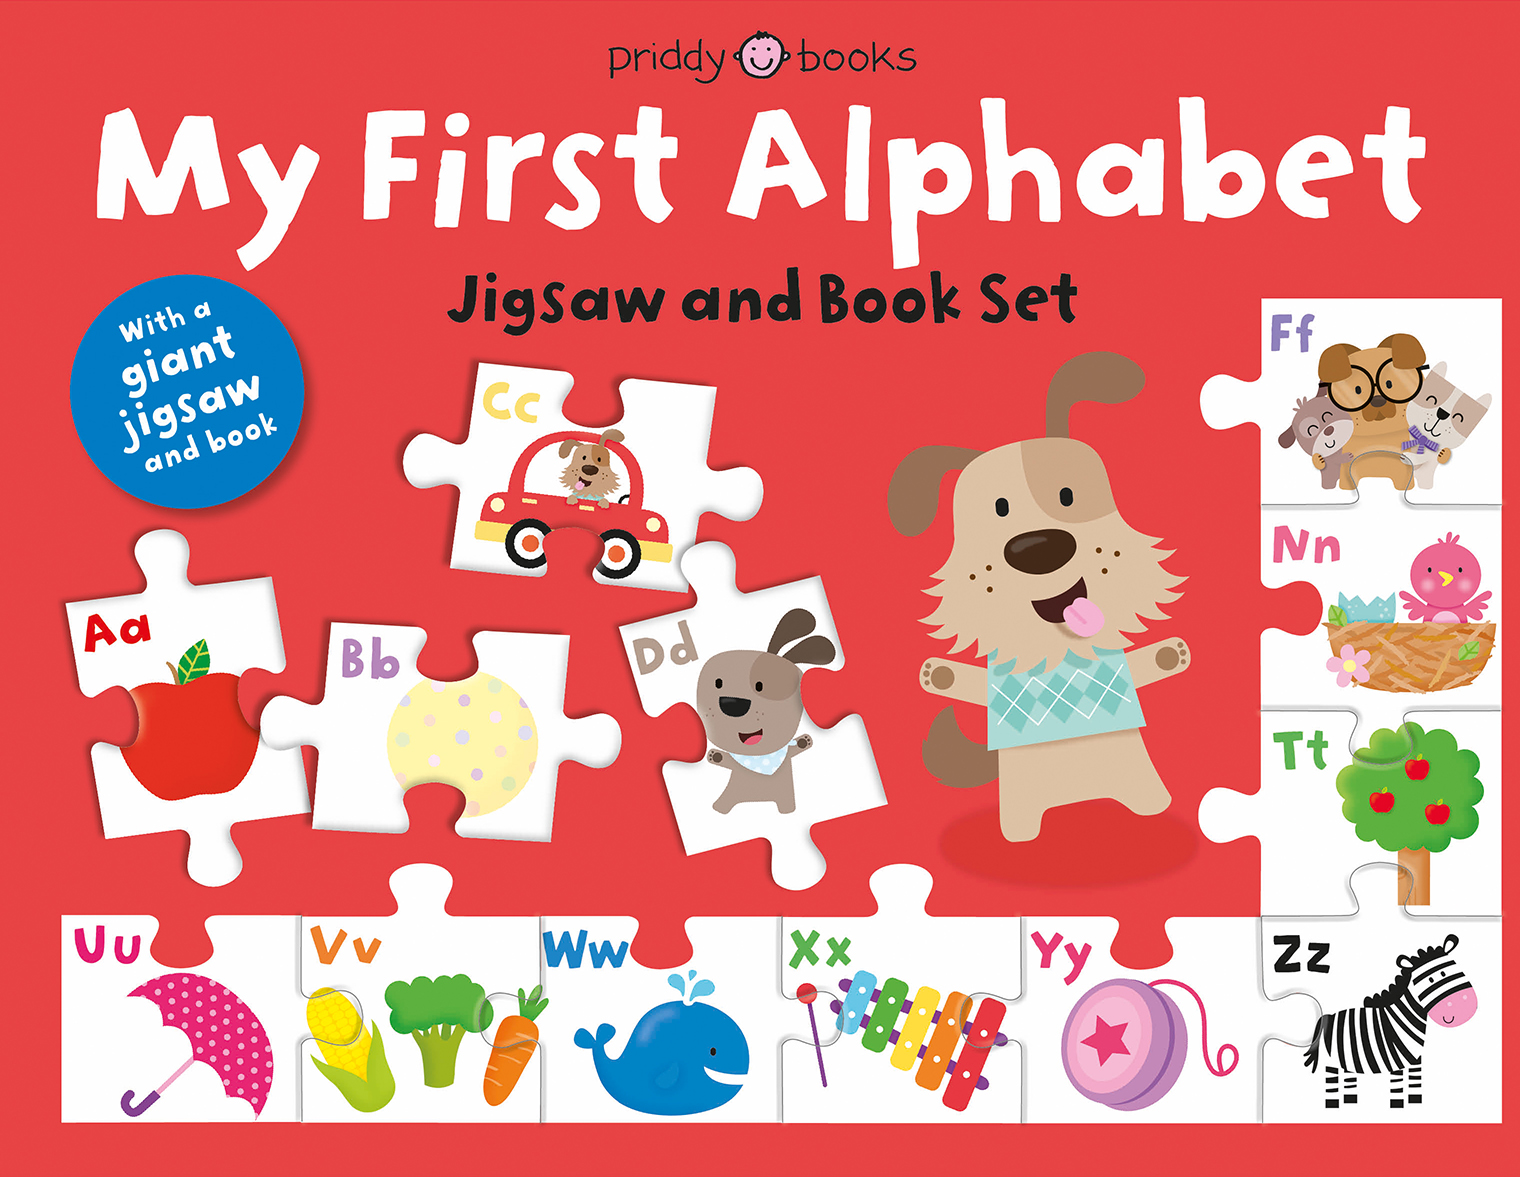 Rogers Blog Priddy Books Alphaprints Animal Opposites Click On The Links Below To Find Out More About Our Other January Releases